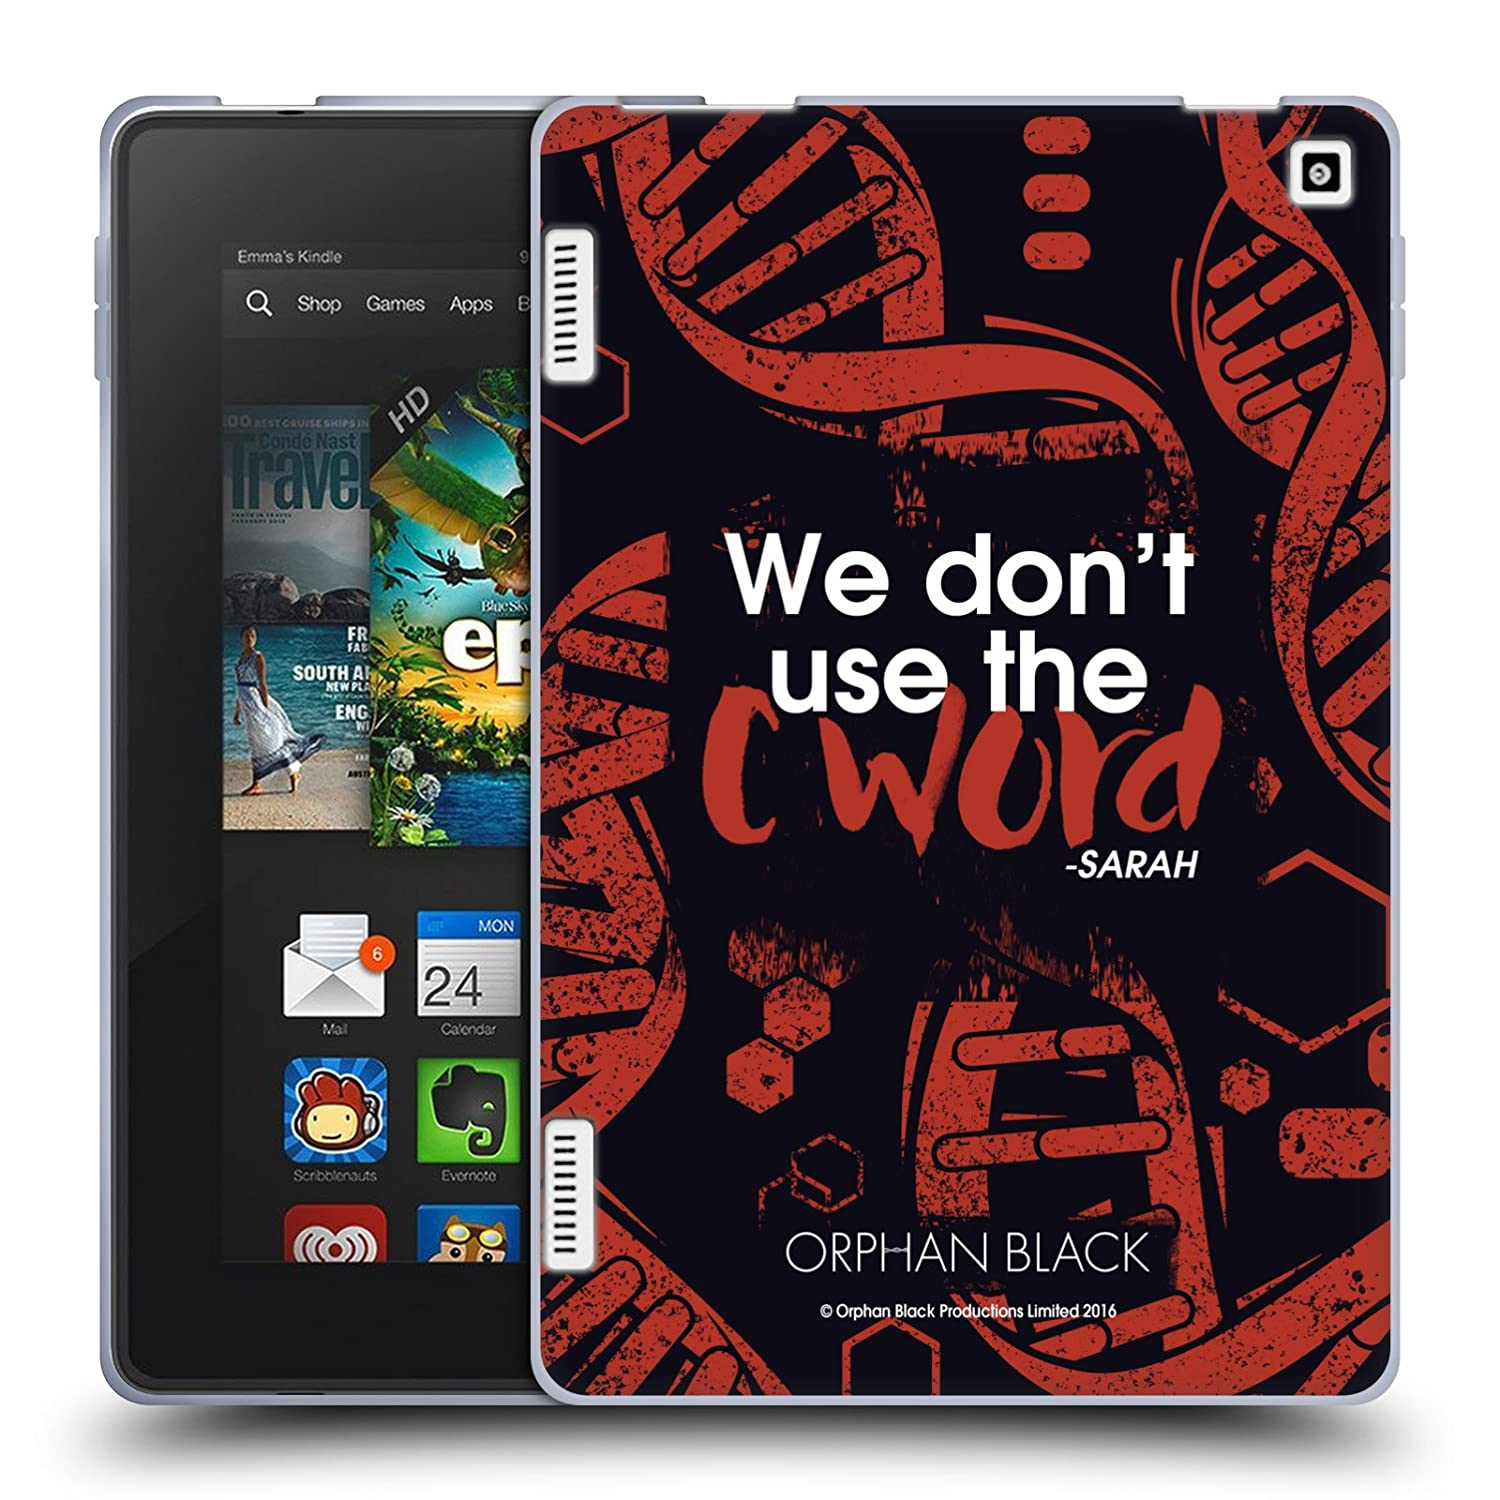 Amazon.com: Official Orphan Black C Word Sestras Soft Gel Case for Amazon Fire HD 7: Cell Phones & Accessories